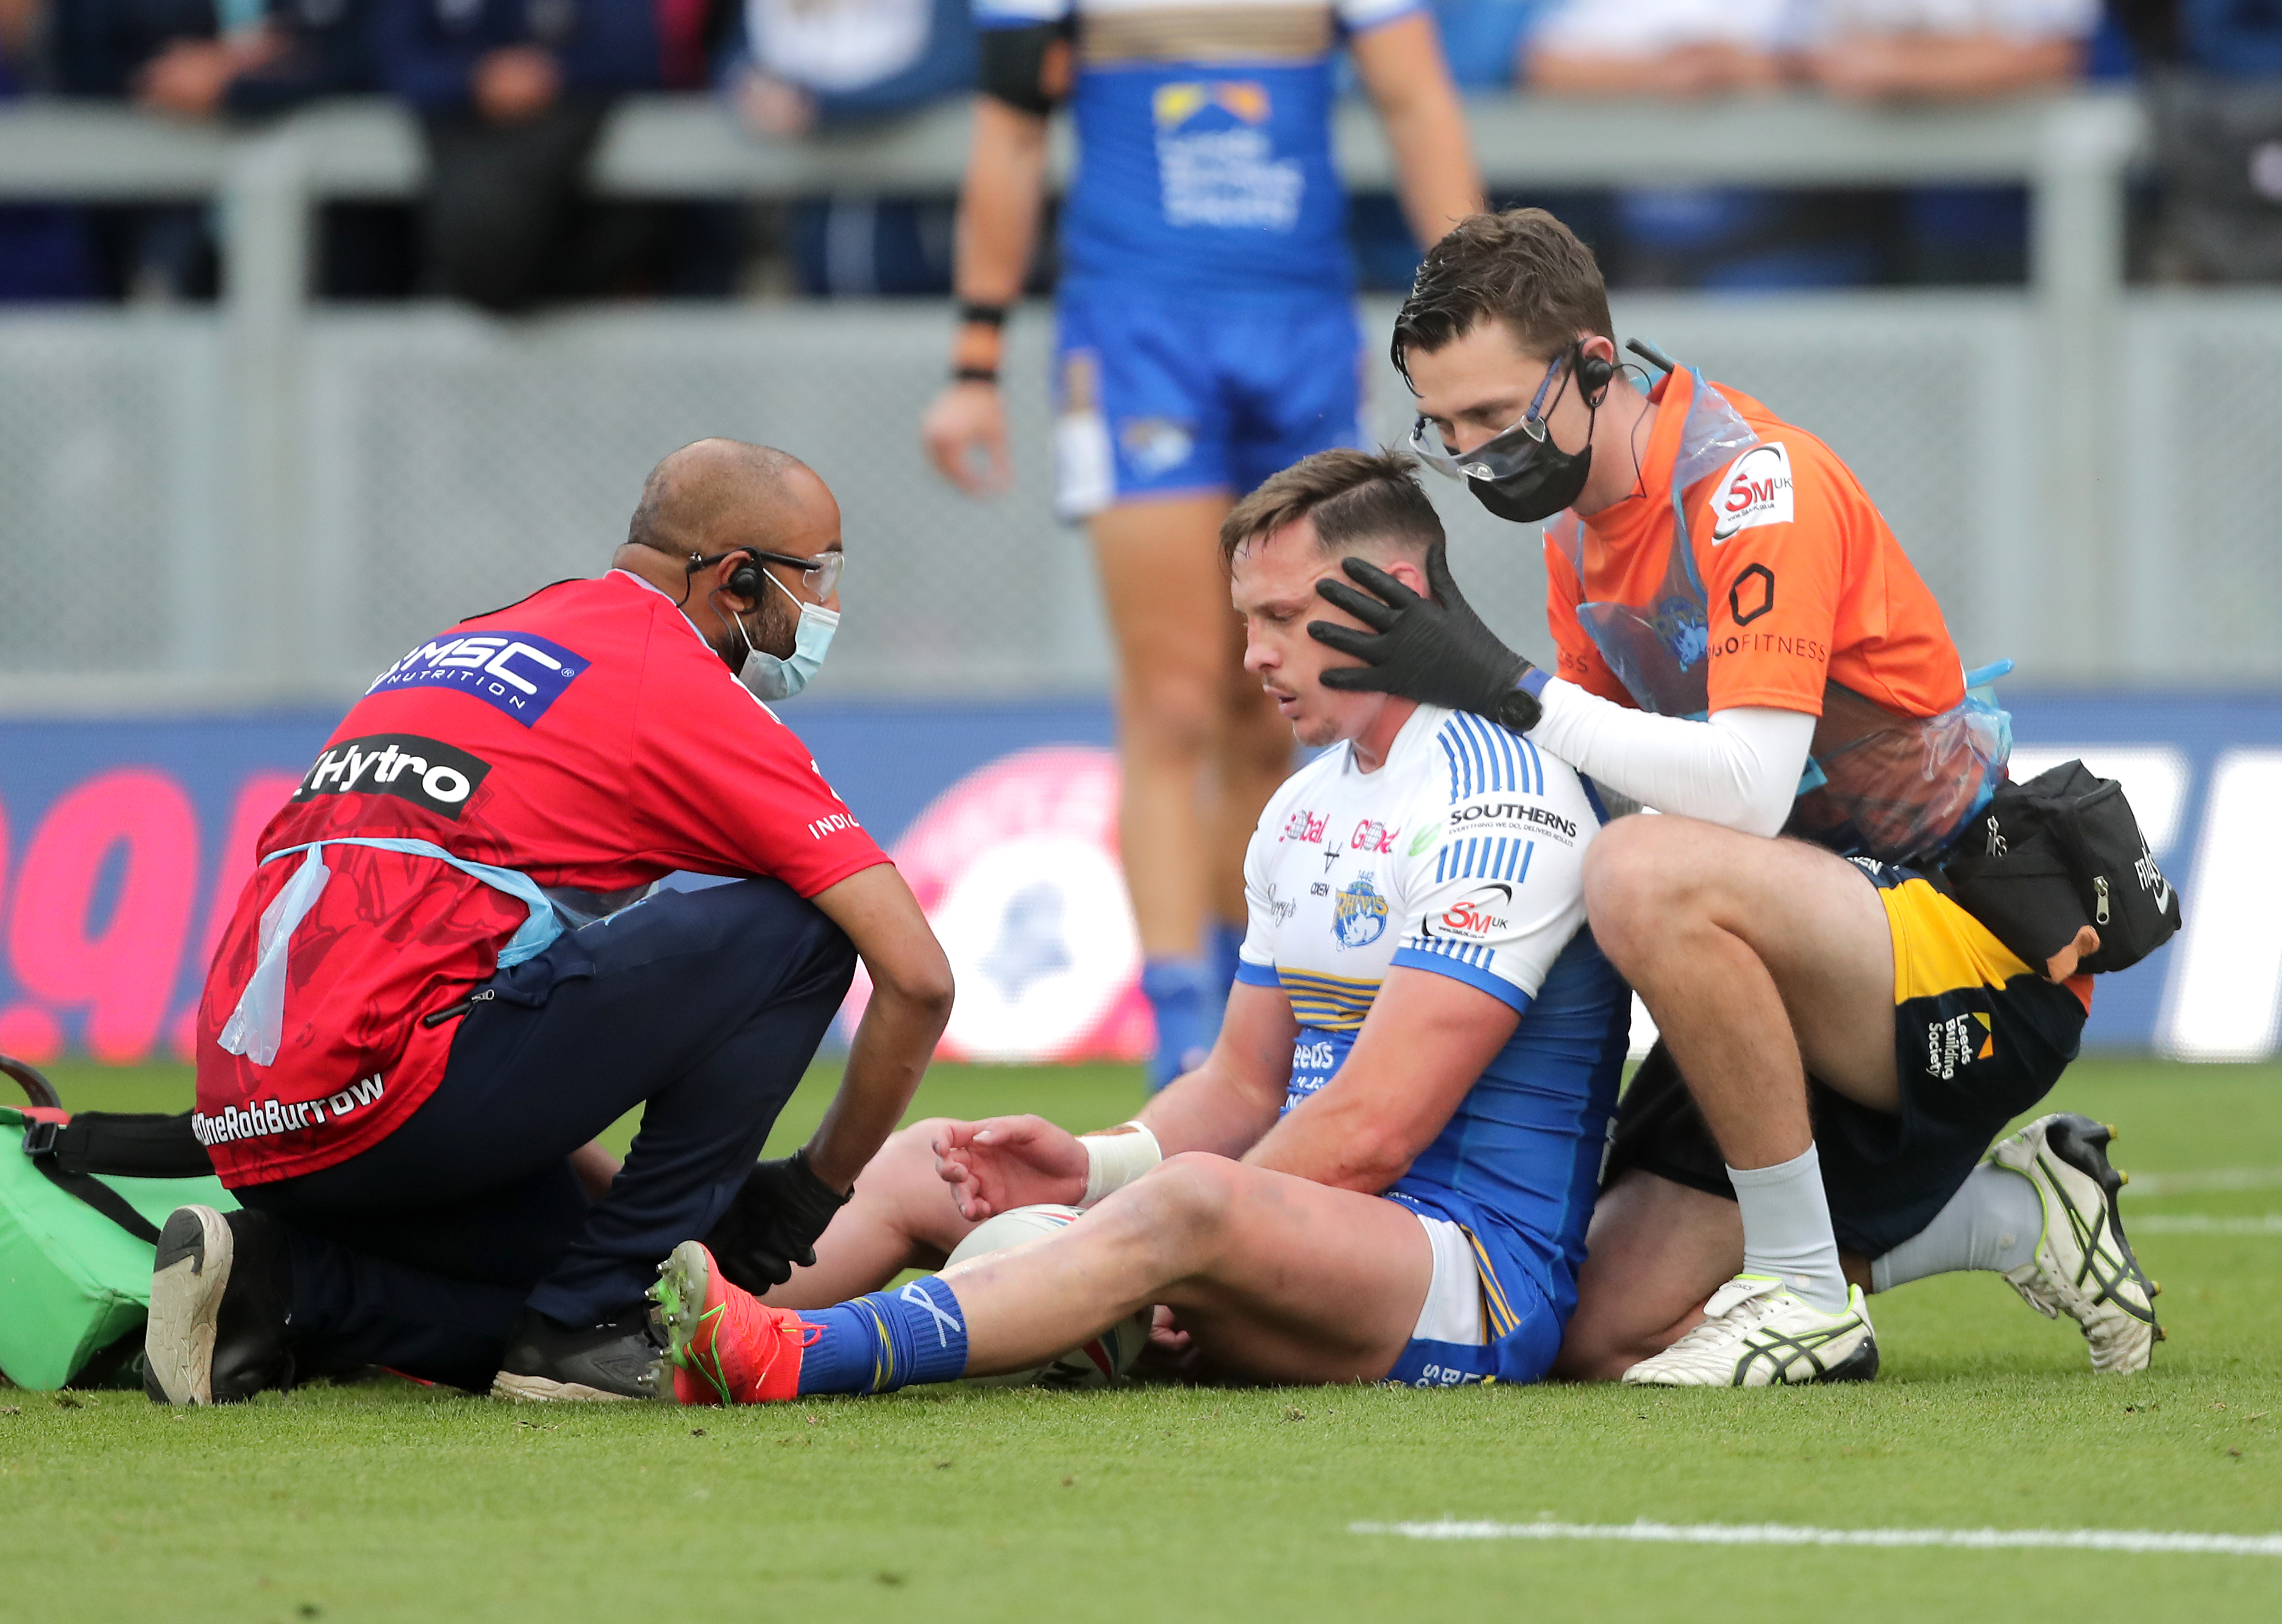 <p>Leeds Rhinos' James Donaldson receives treatment for a possible head injury during the Betfred Super League match at Emerald Headingley Stadium, Leeds. Picture date: Sunday August 1, 2021.</p>